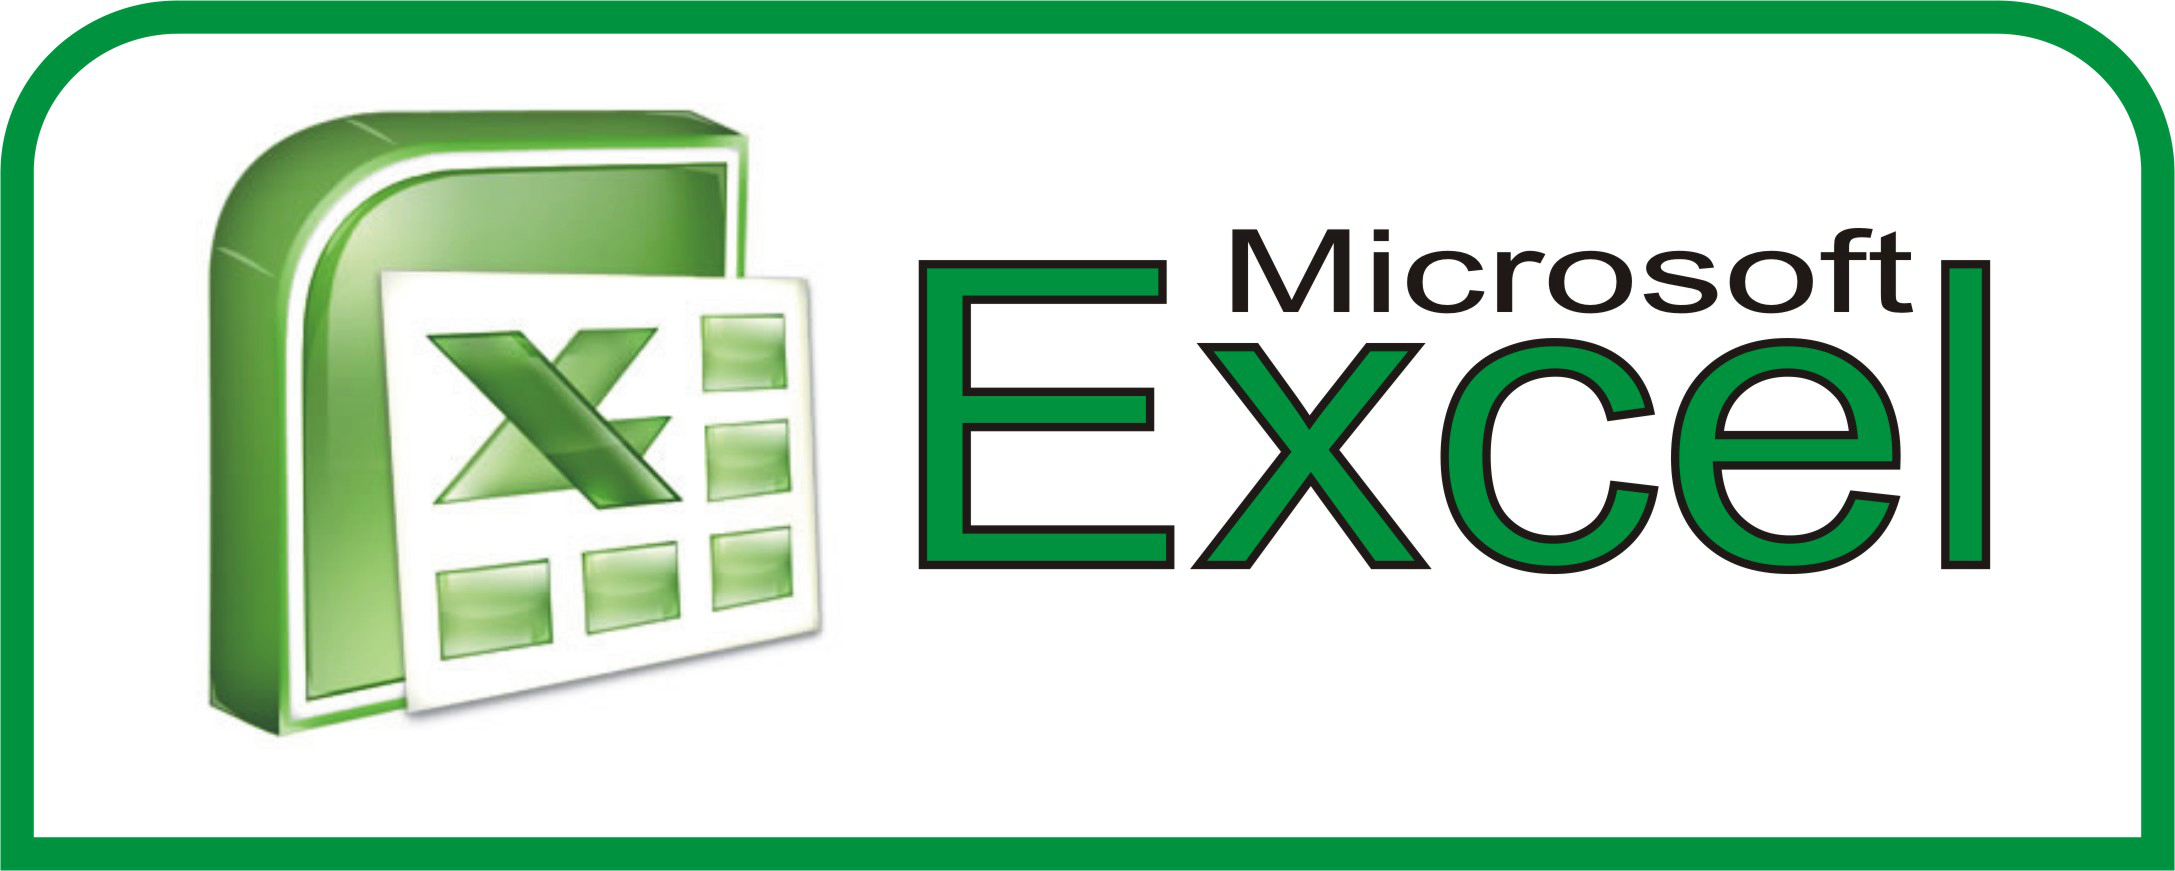 Ediblewildsus  Mesmerizing  Excel Shortcuts You Probably Didnt Know About  Techdissected With Inspiring Excel Interview Test Besides Youtube How To Use Excel Furthermore Excel Constants With Breathtaking Leading Zero Excel Also Converting Columns To Rows In Excel In Addition Time Series In Excel And Freeze Panes Excel  As Well As Unlock Excel Password Additionally Free Calendar Template Excel From Techdissectedcom With Ediblewildsus  Inspiring  Excel Shortcuts You Probably Didnt Know About  Techdissected With Breathtaking Excel Interview Test Besides Youtube How To Use Excel Furthermore Excel Constants And Mesmerizing Leading Zero Excel Also Converting Columns To Rows In Excel In Addition Time Series In Excel From Techdissectedcom